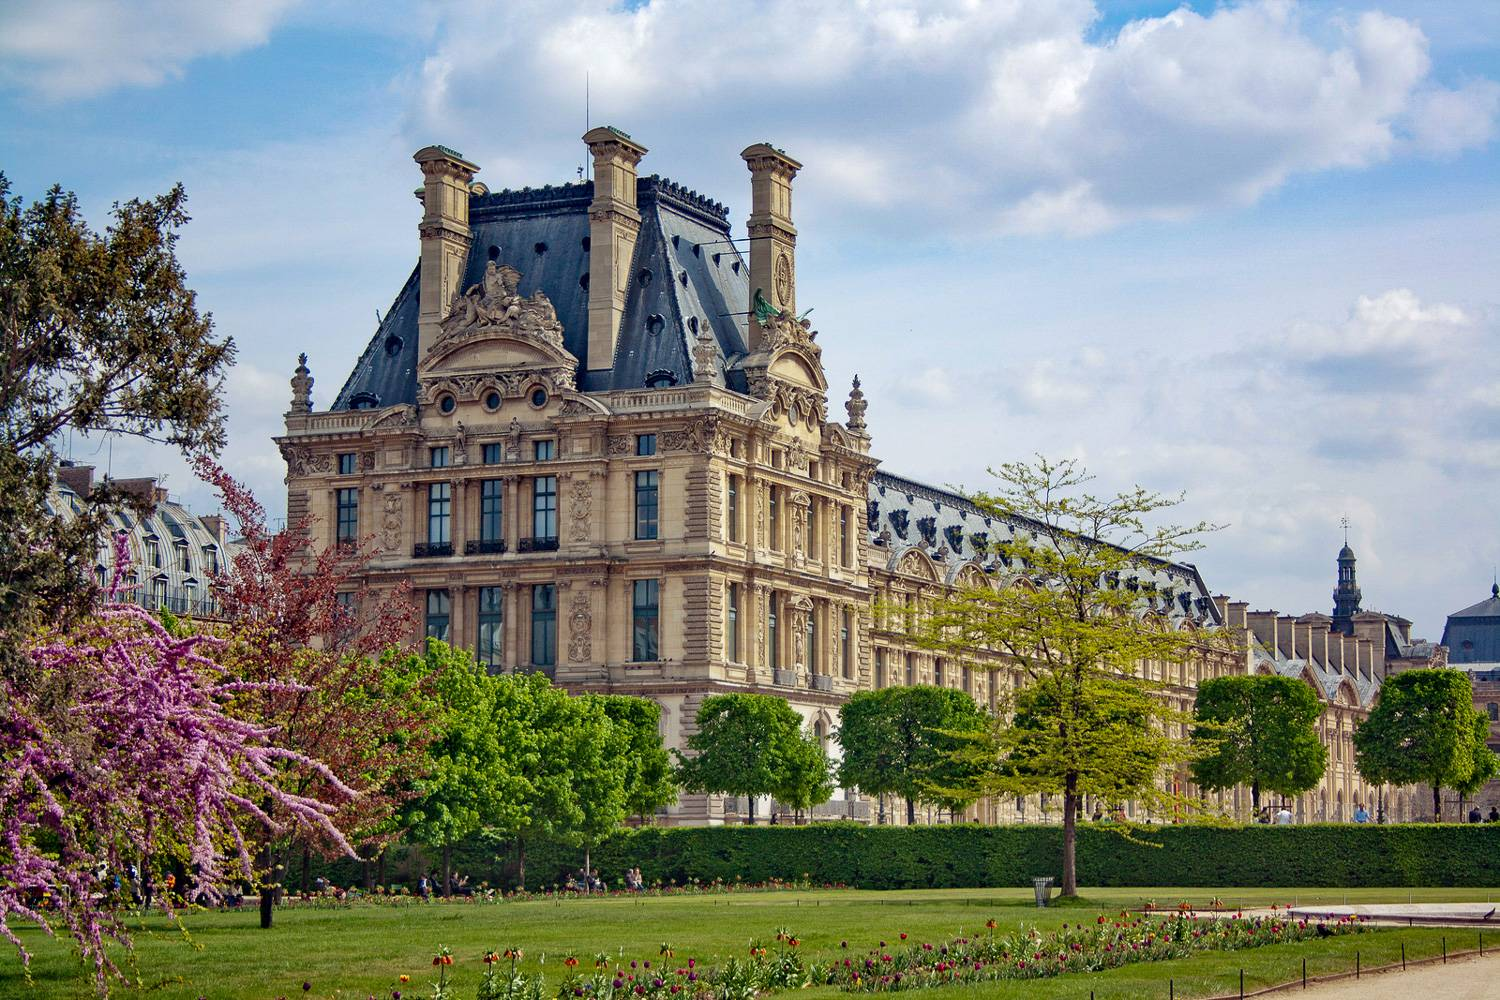 Image of the Louvre Museum in Paris from Tuileries Garden in spring.